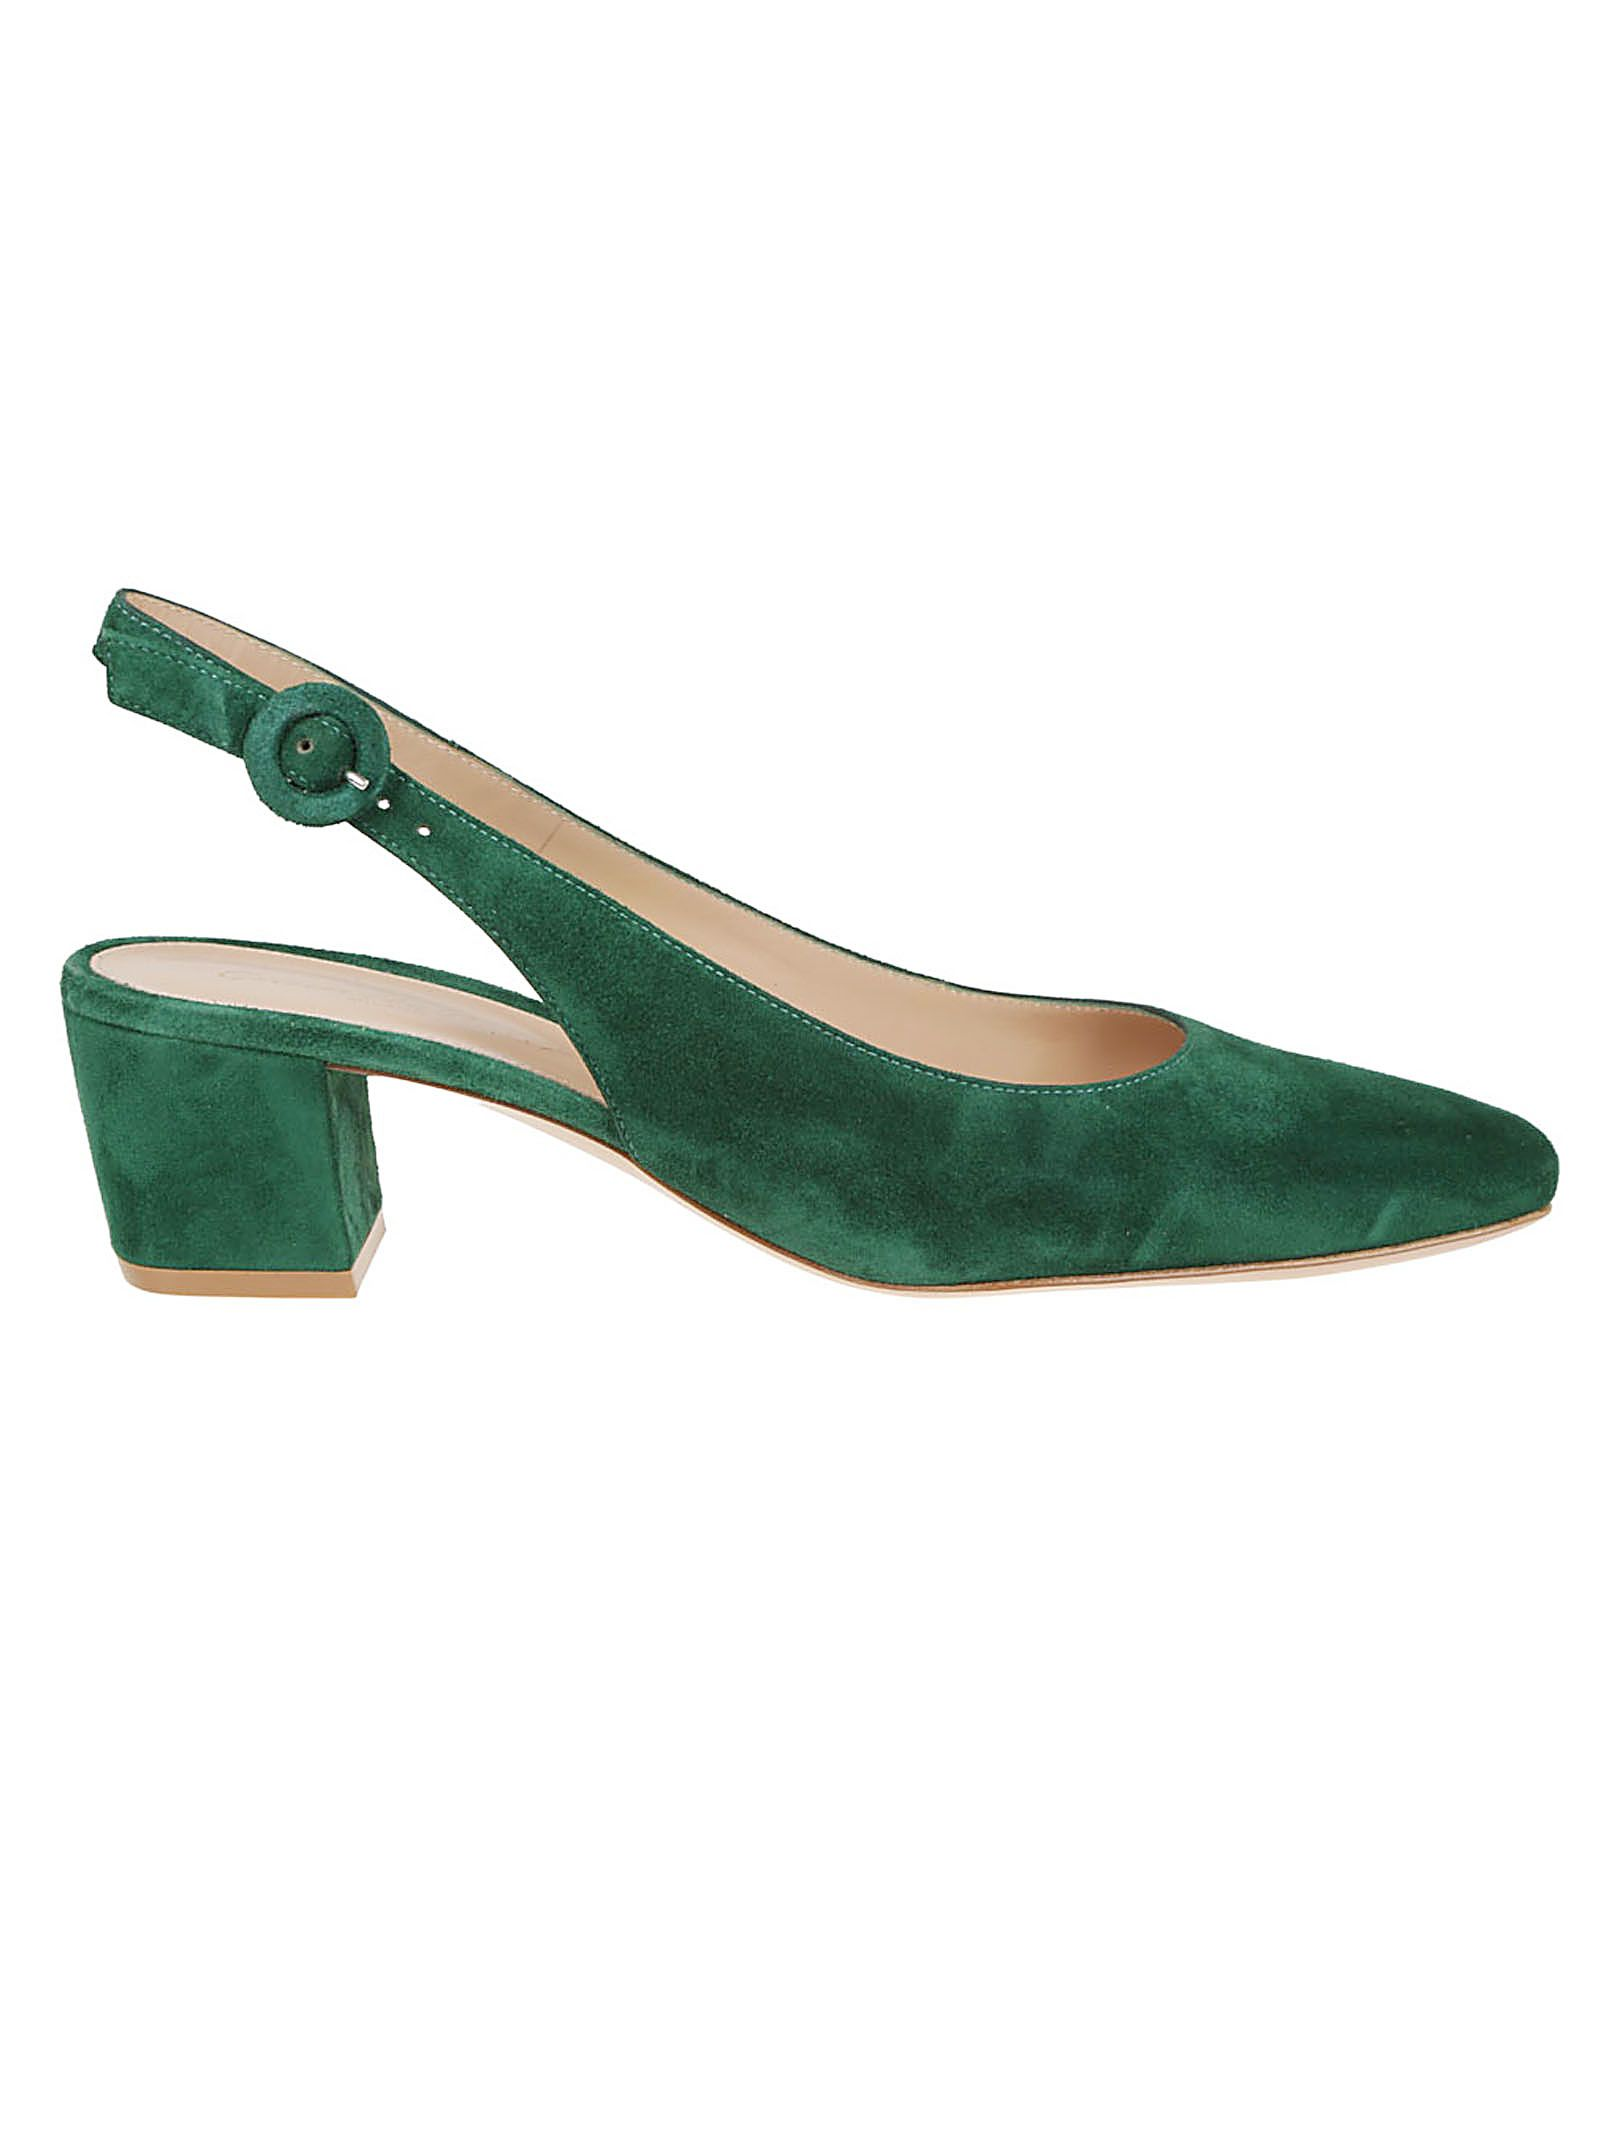 c628be5c3be8 Gianvito Rossi Slingback Pumps - Basic ...